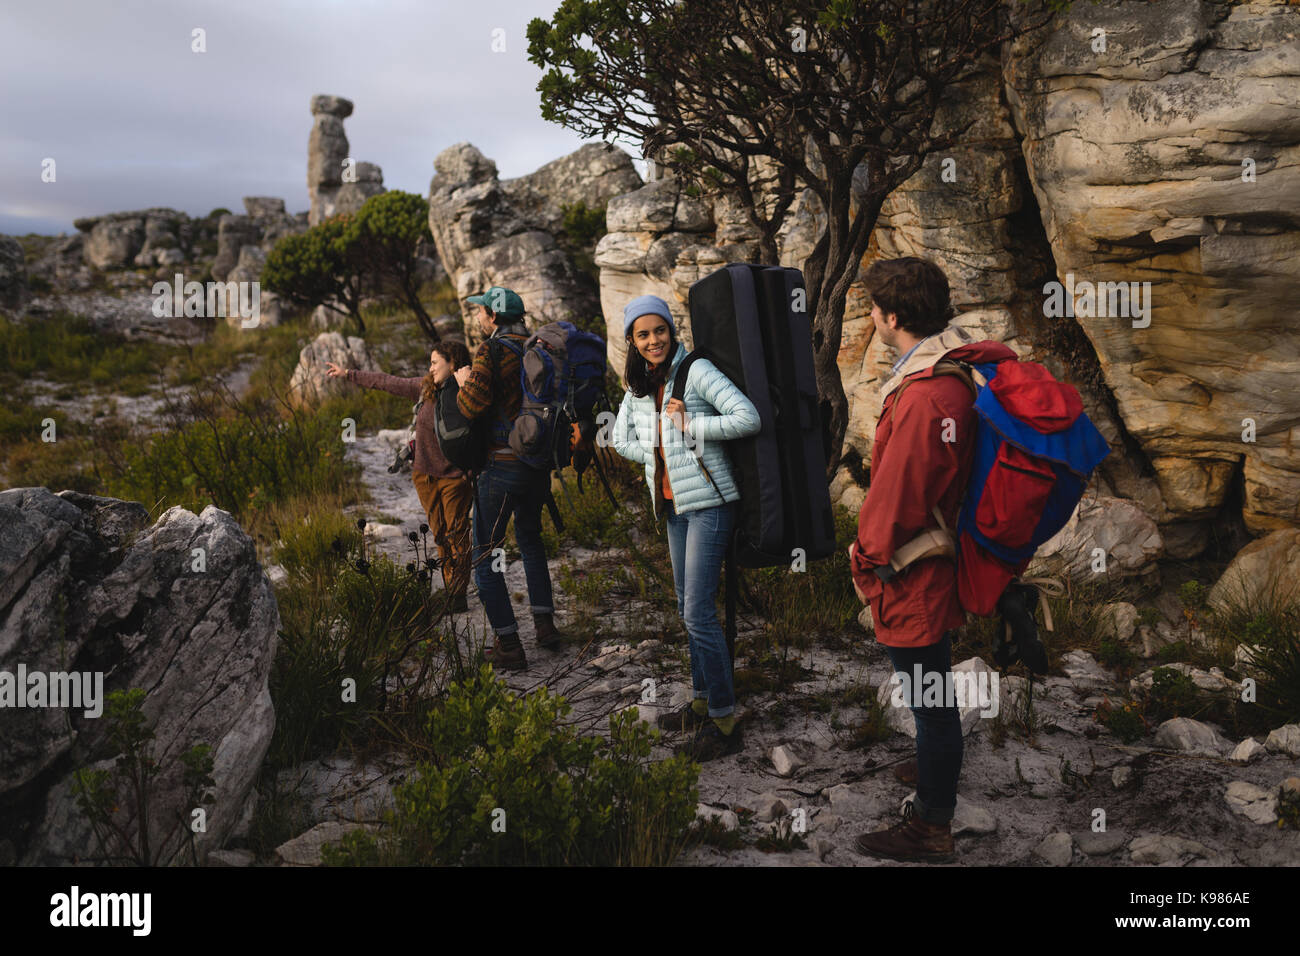 Group of hikers standing with rucksack during mountaineering - Stock Image